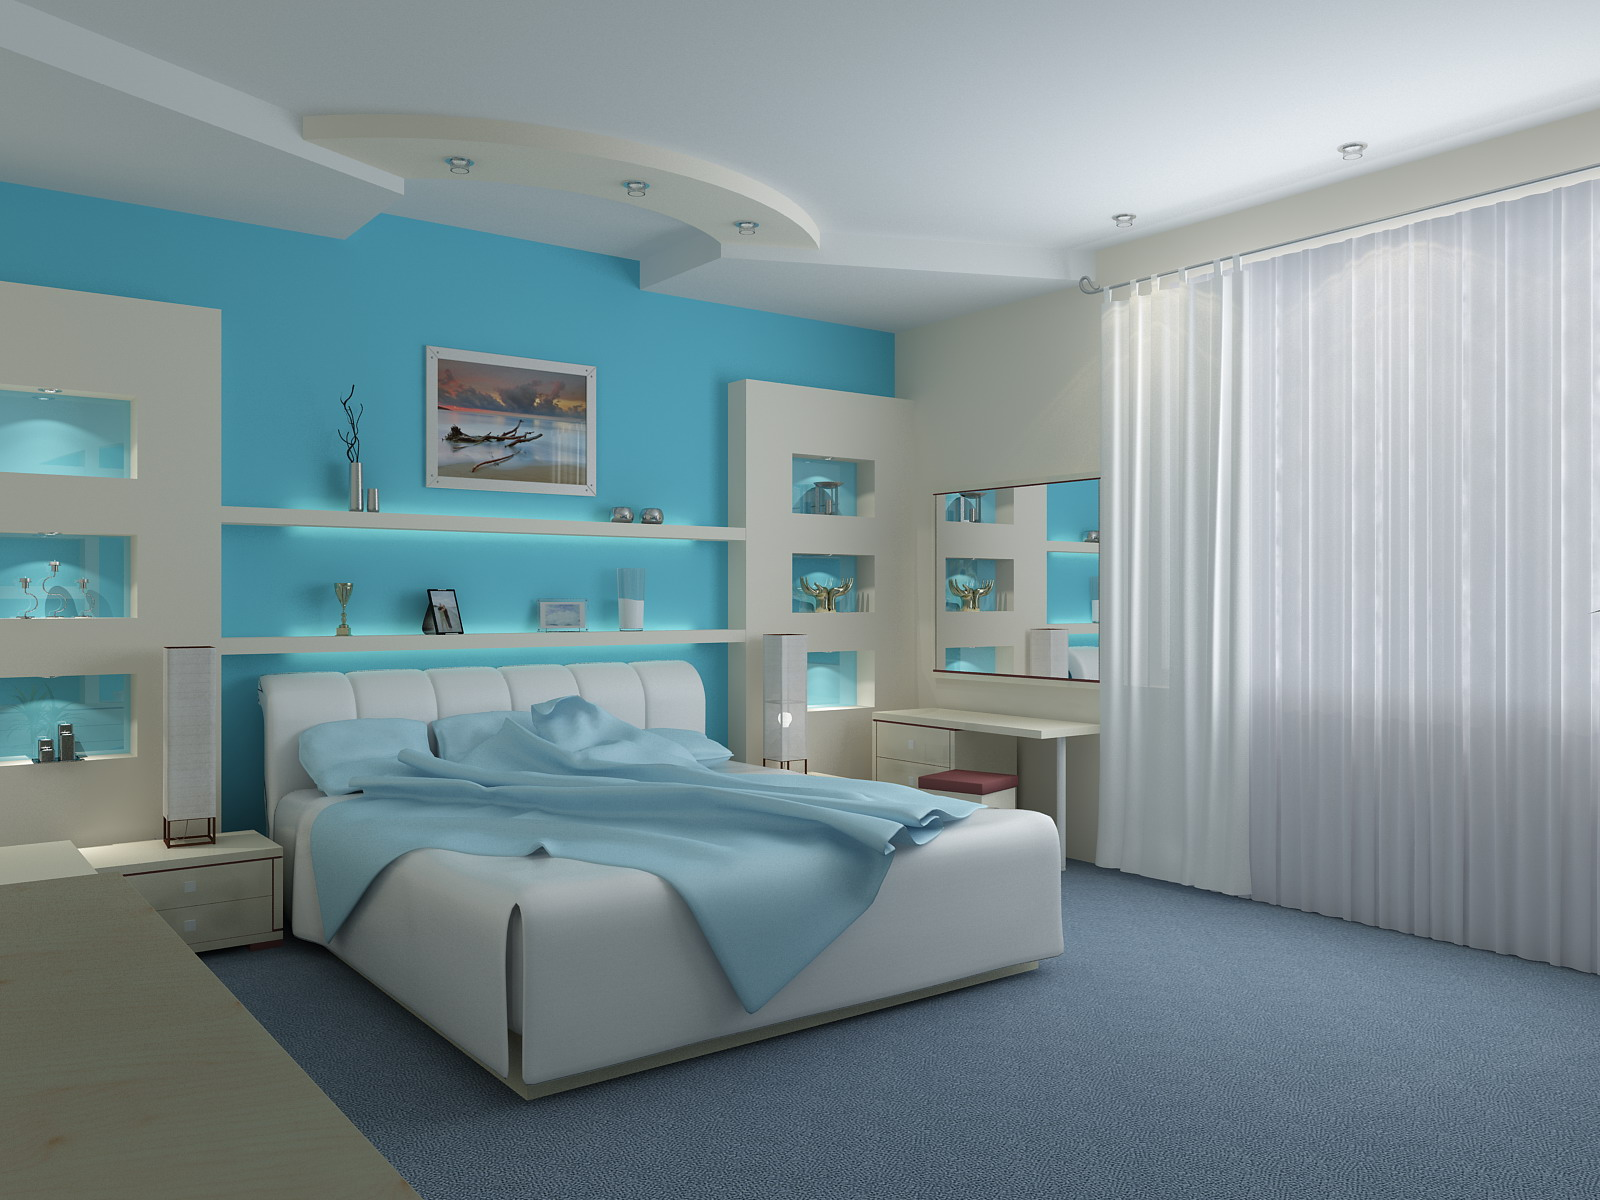 Apartment Decorating Ideas Bedroom